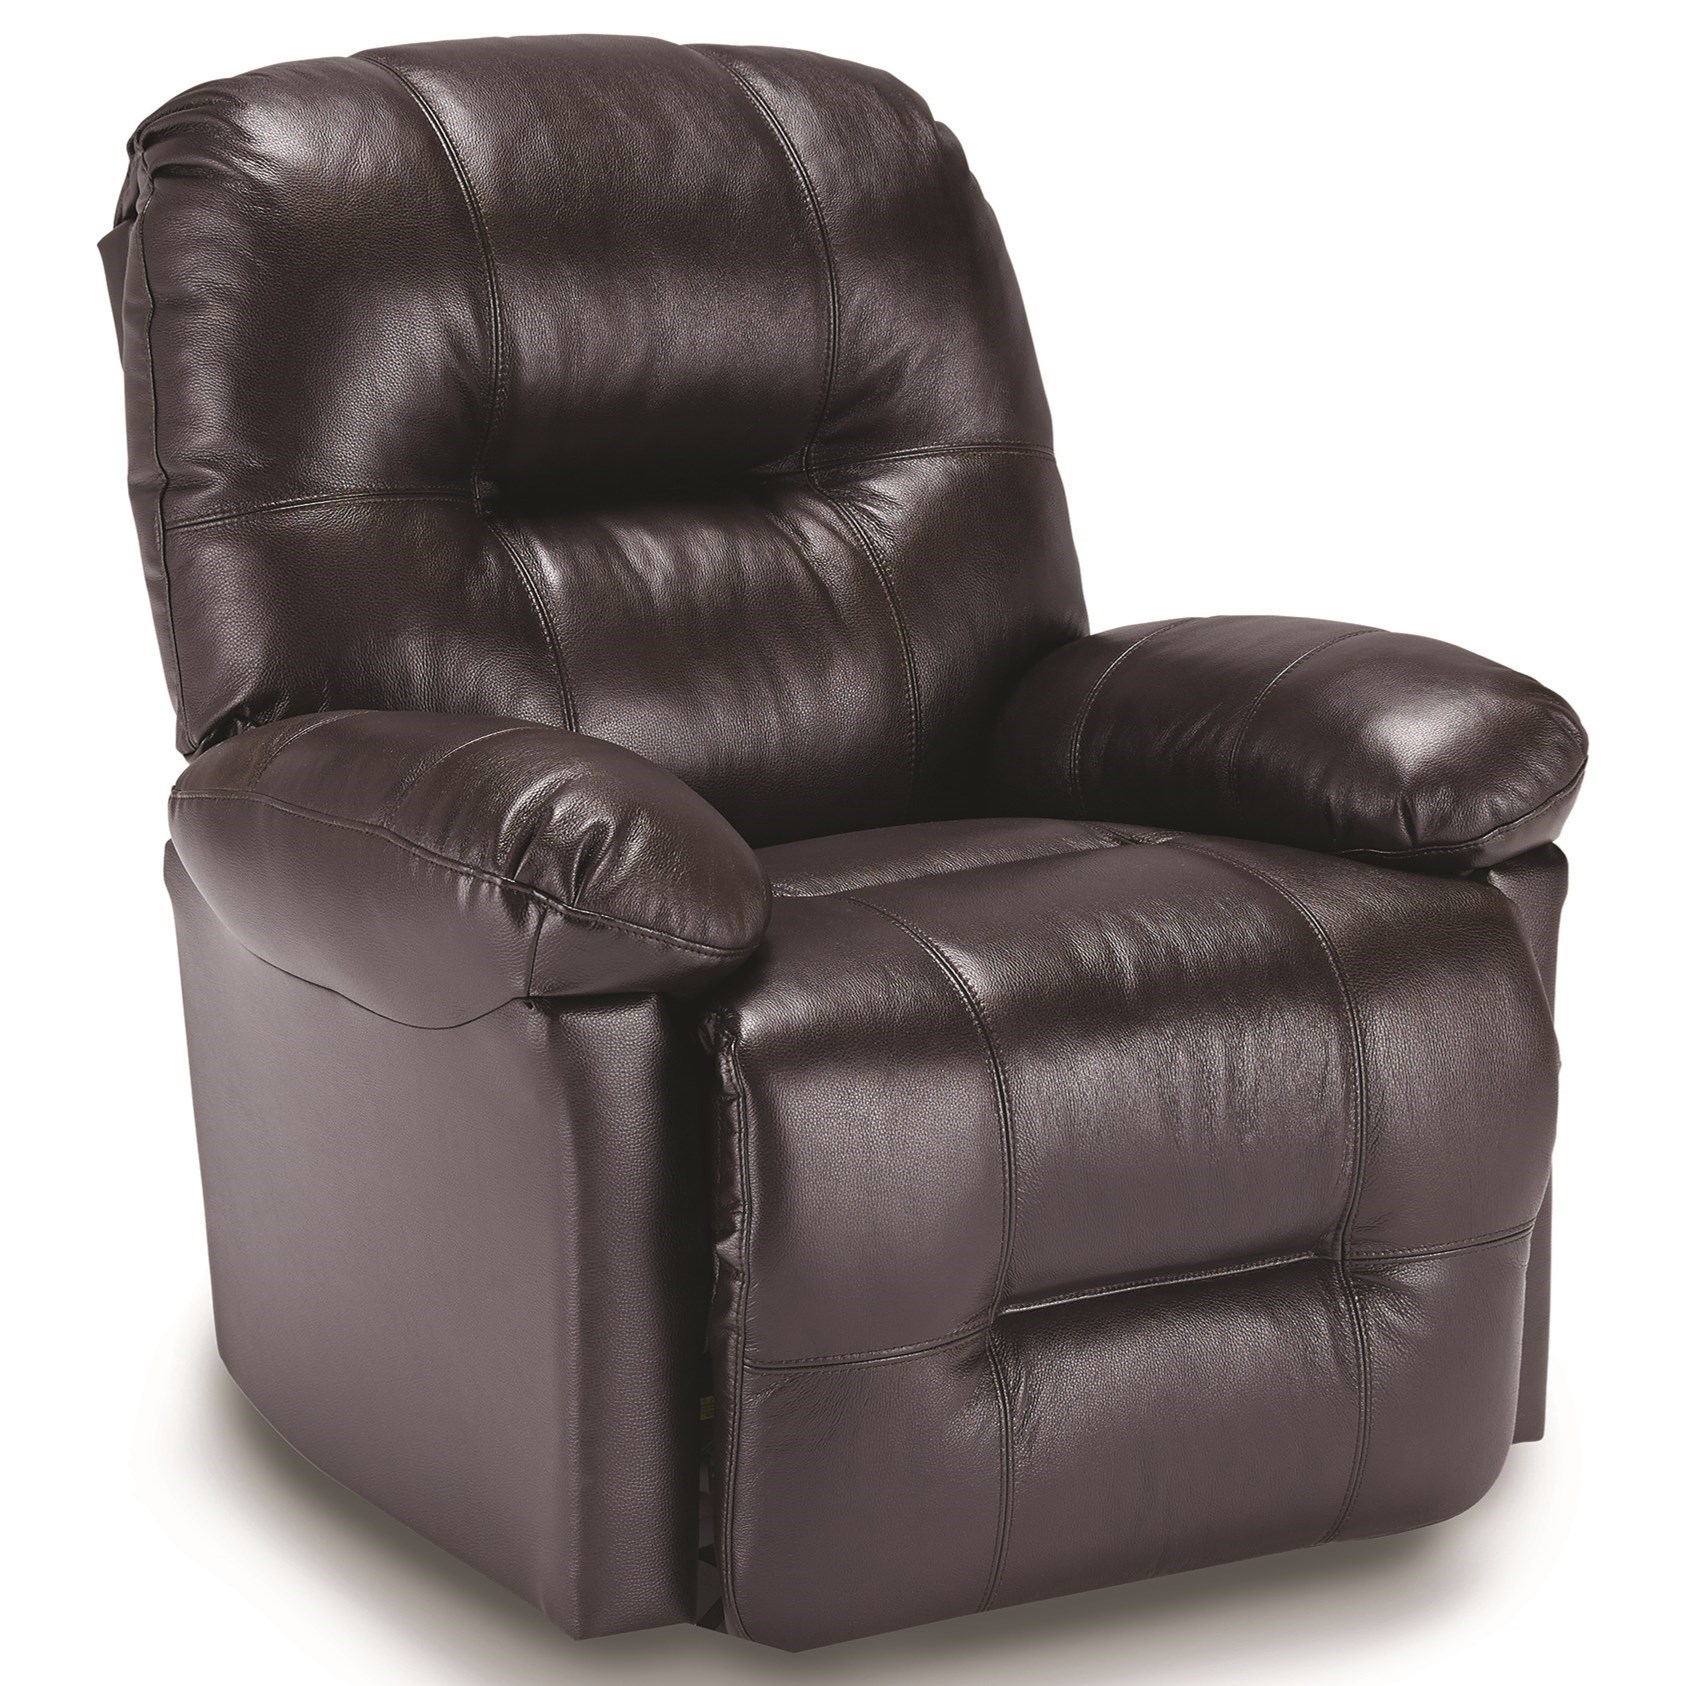 S501 Zaynah Power Rocker Recliner by Best Home Furnishings at Lapeer Furniture & Mattress Center